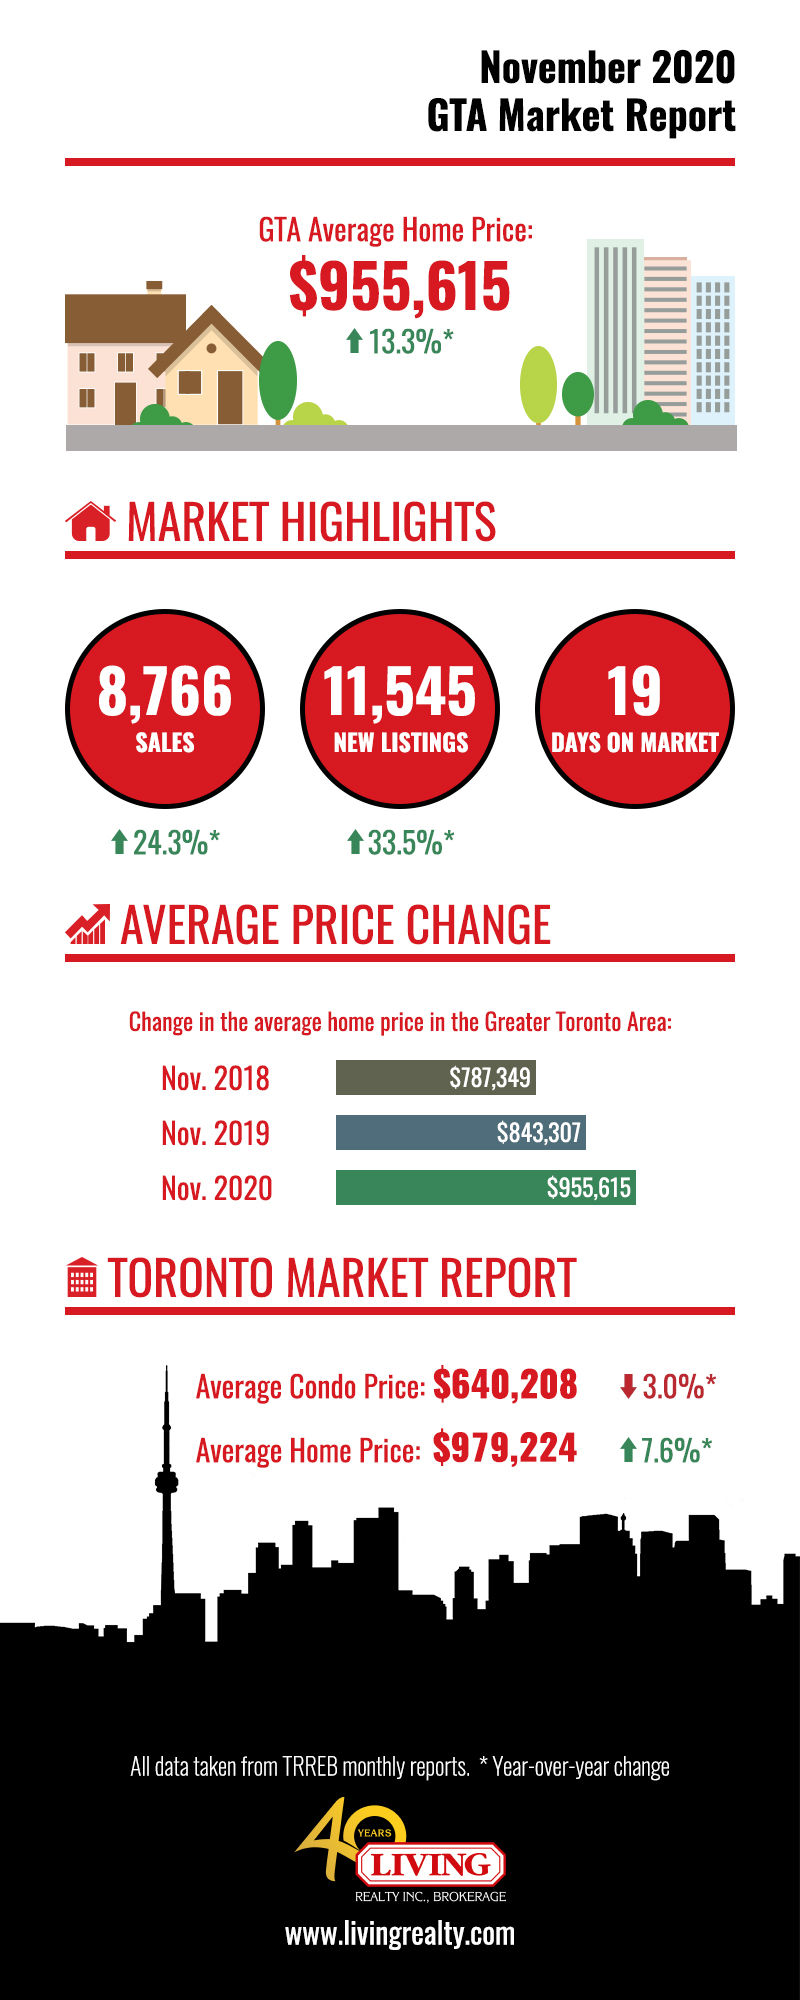 Infographic of GTA and Toronto housing numbers for Nov 2020.